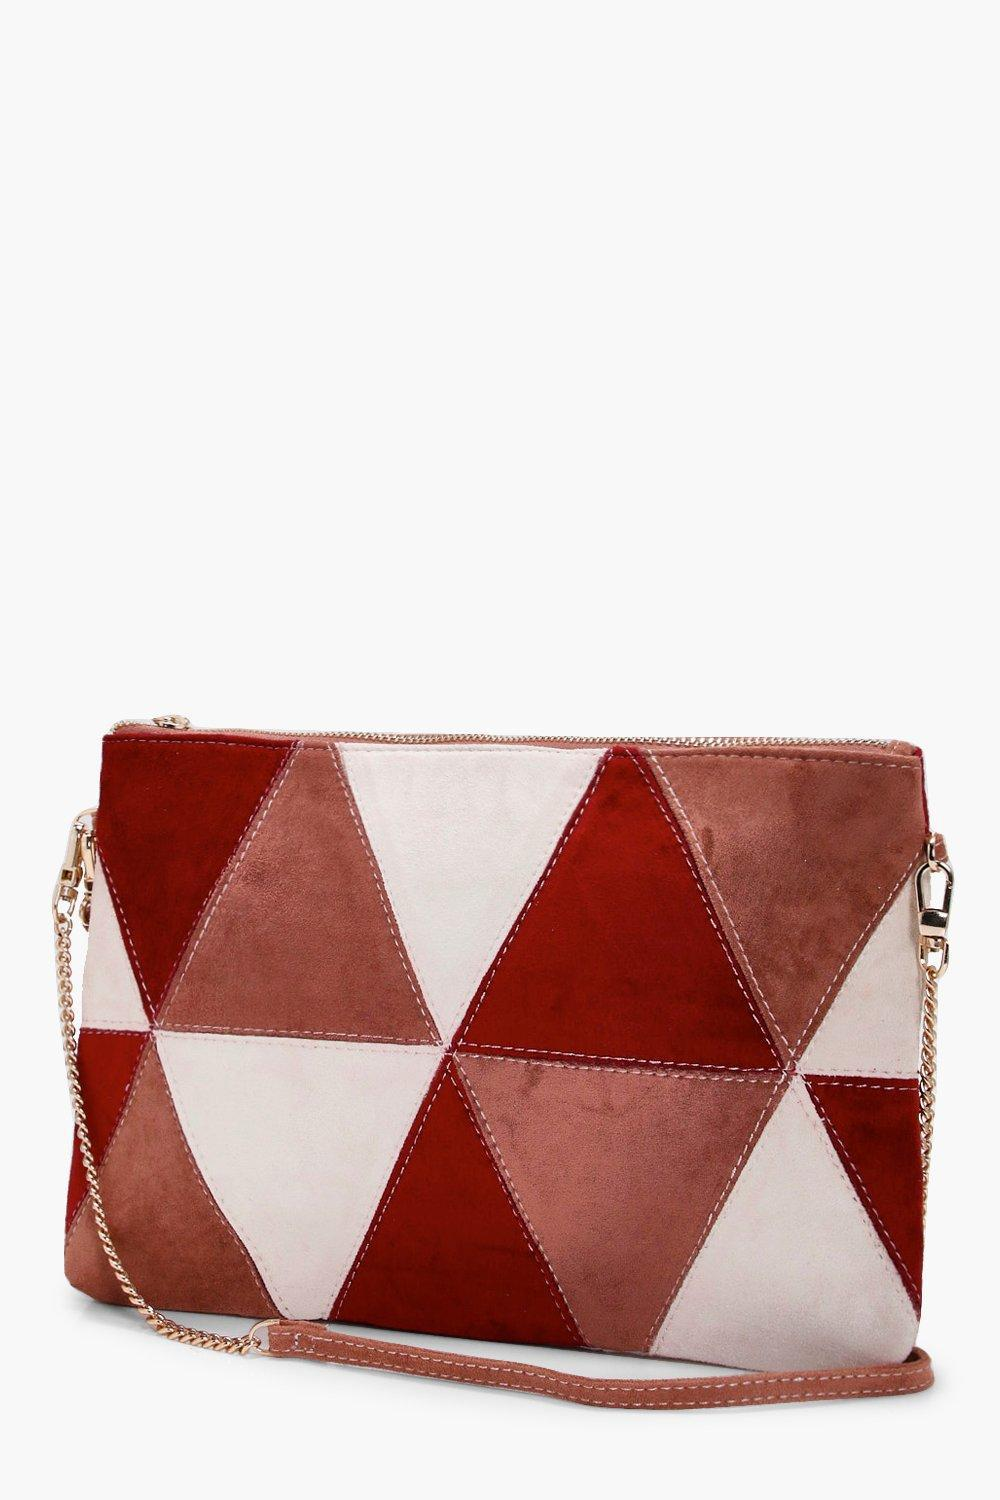 Boohoo Poppy Suedette Patchwork Cross Body in Red